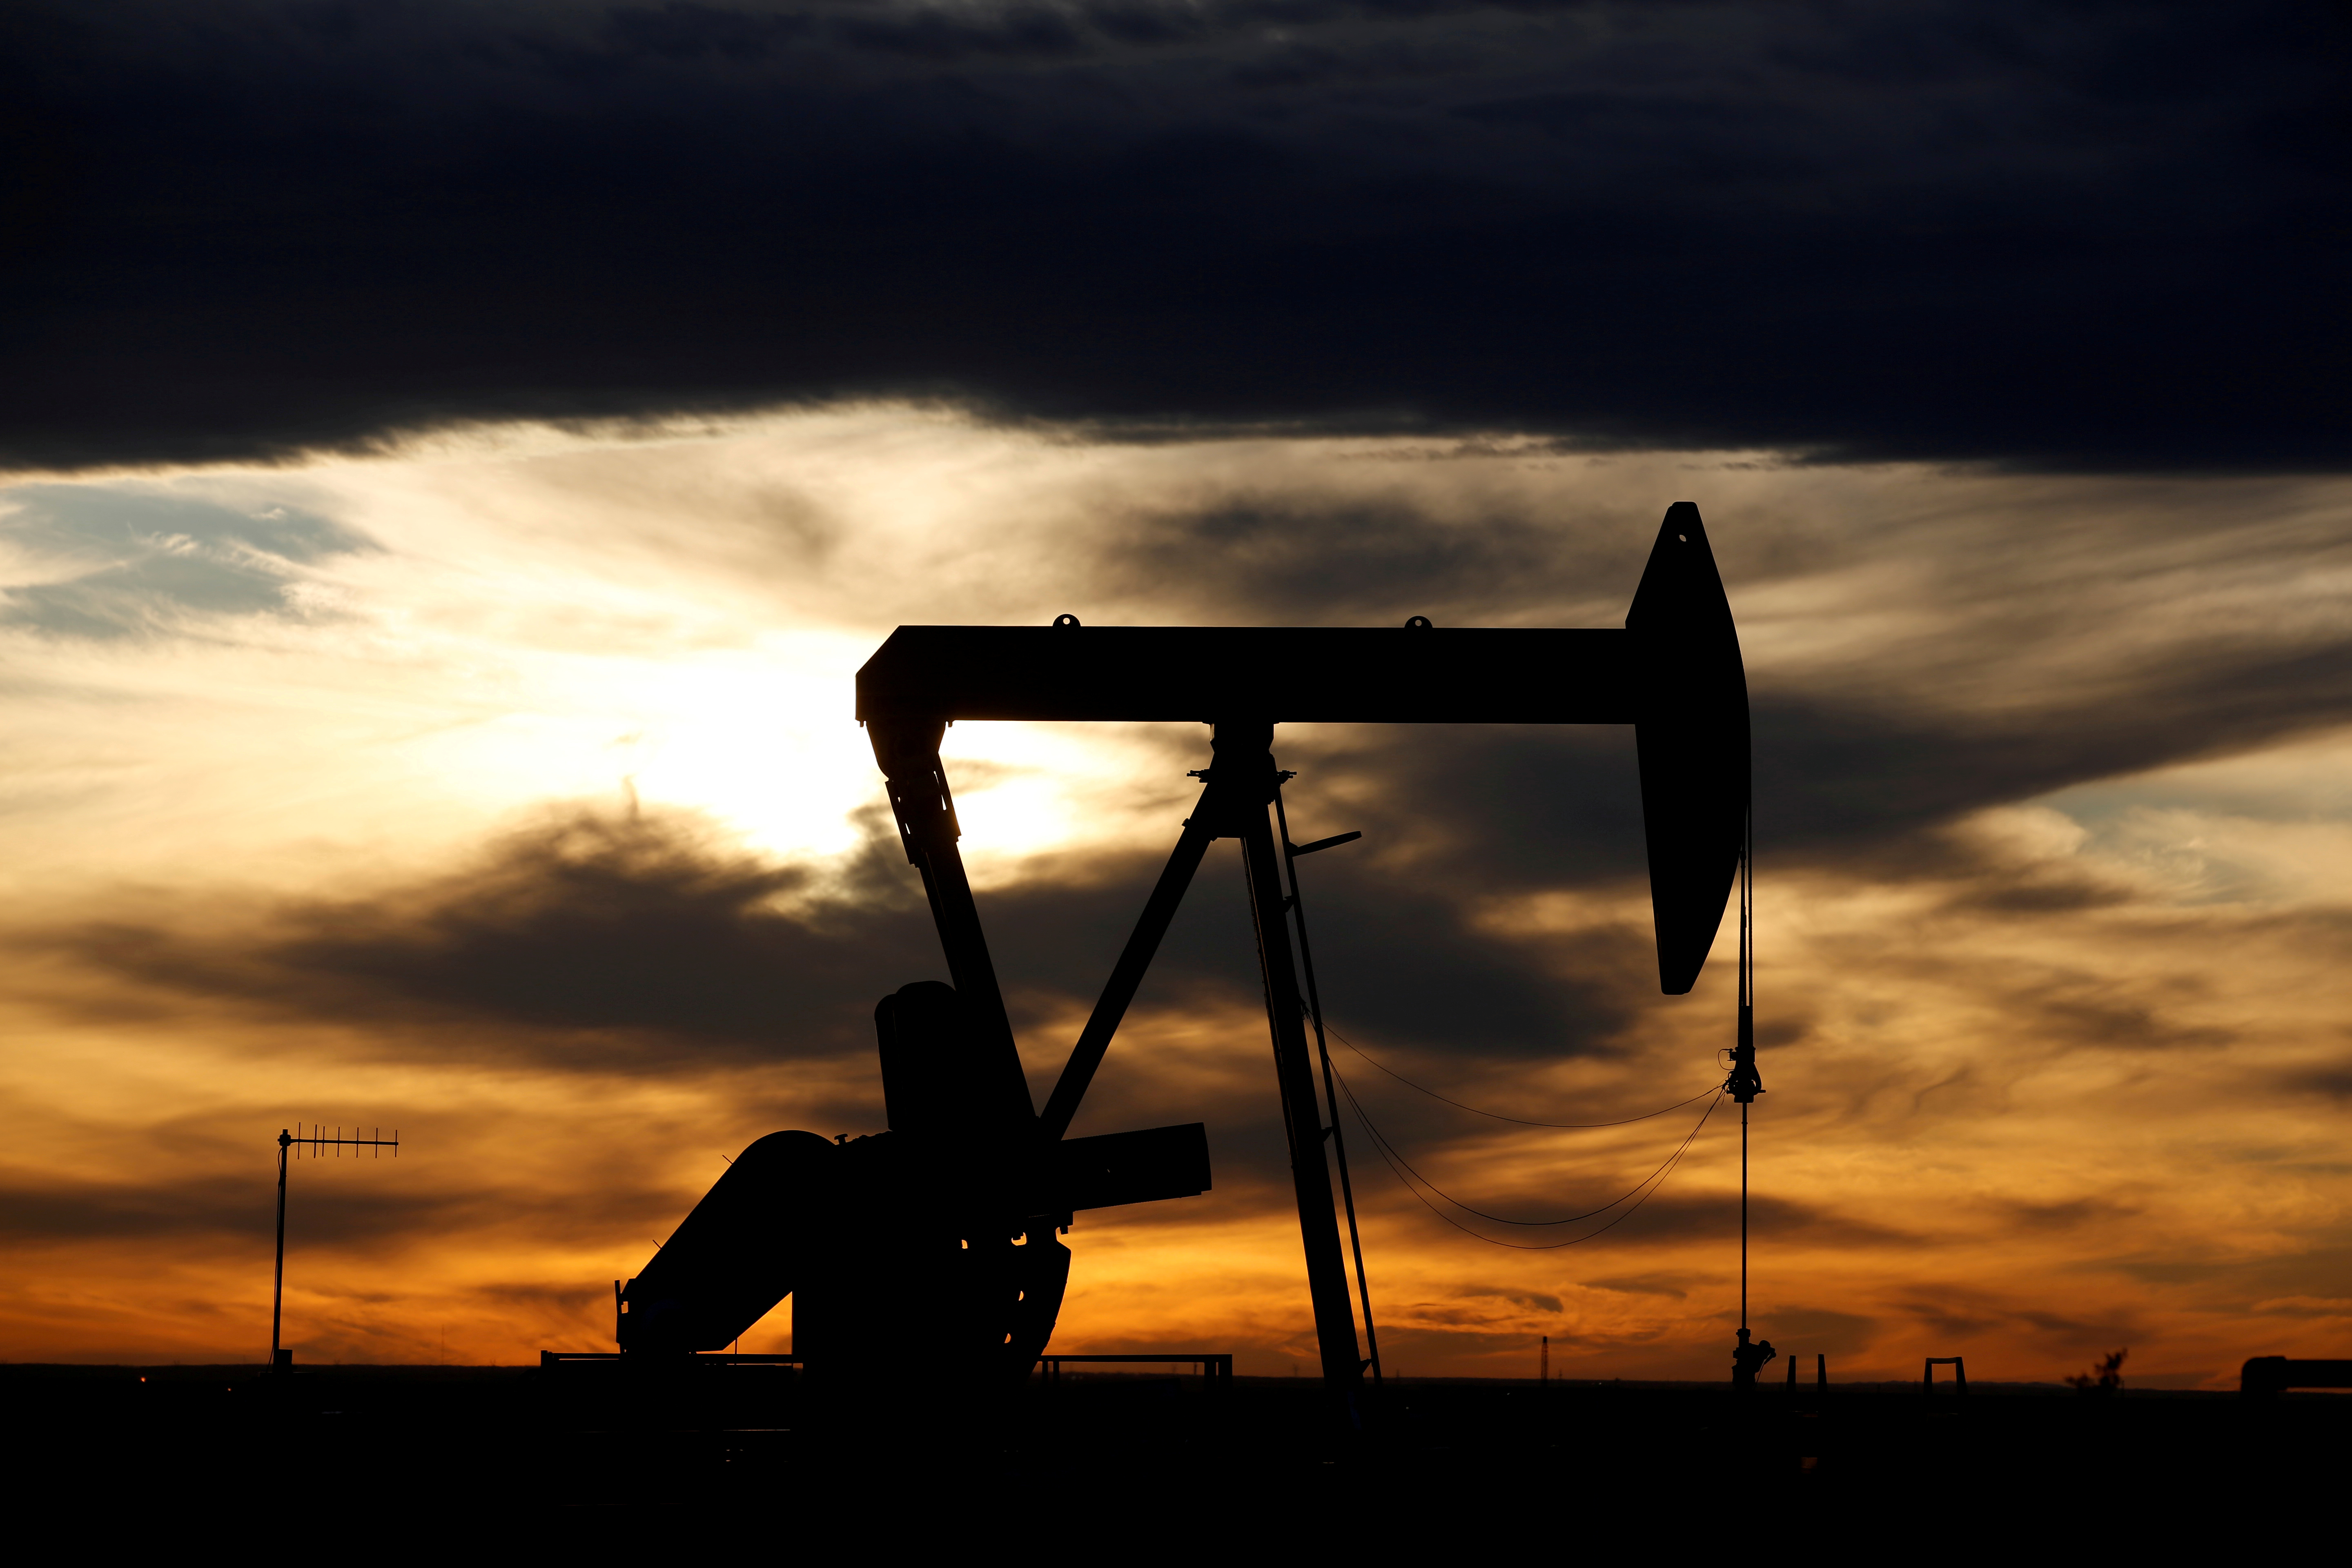 The sun sets behind a crude oil pump jack on a drill pad in the Permian Basin in Loving County, Texas, U.S. November 24, 2019. REUTERS/Angus Mordant/File Photo